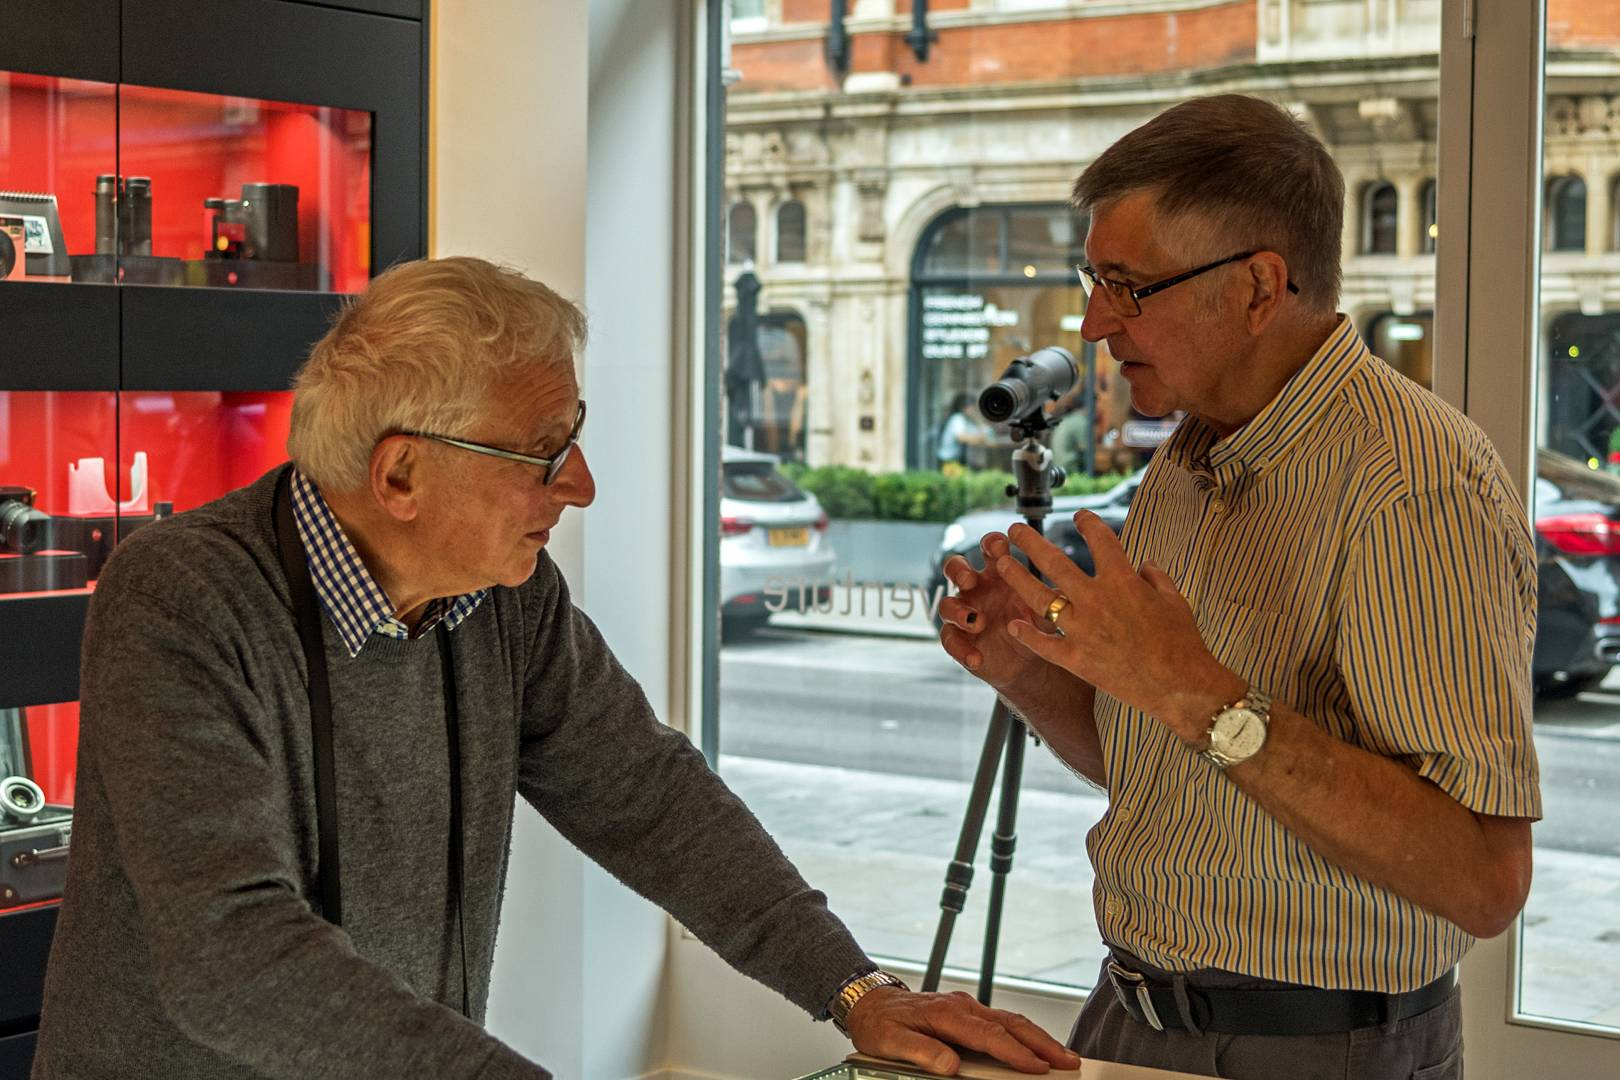 John Dudkins LRPS, wearing his Leica watch, charring with Chris Angeloglou, the former Sunday Times picture editor